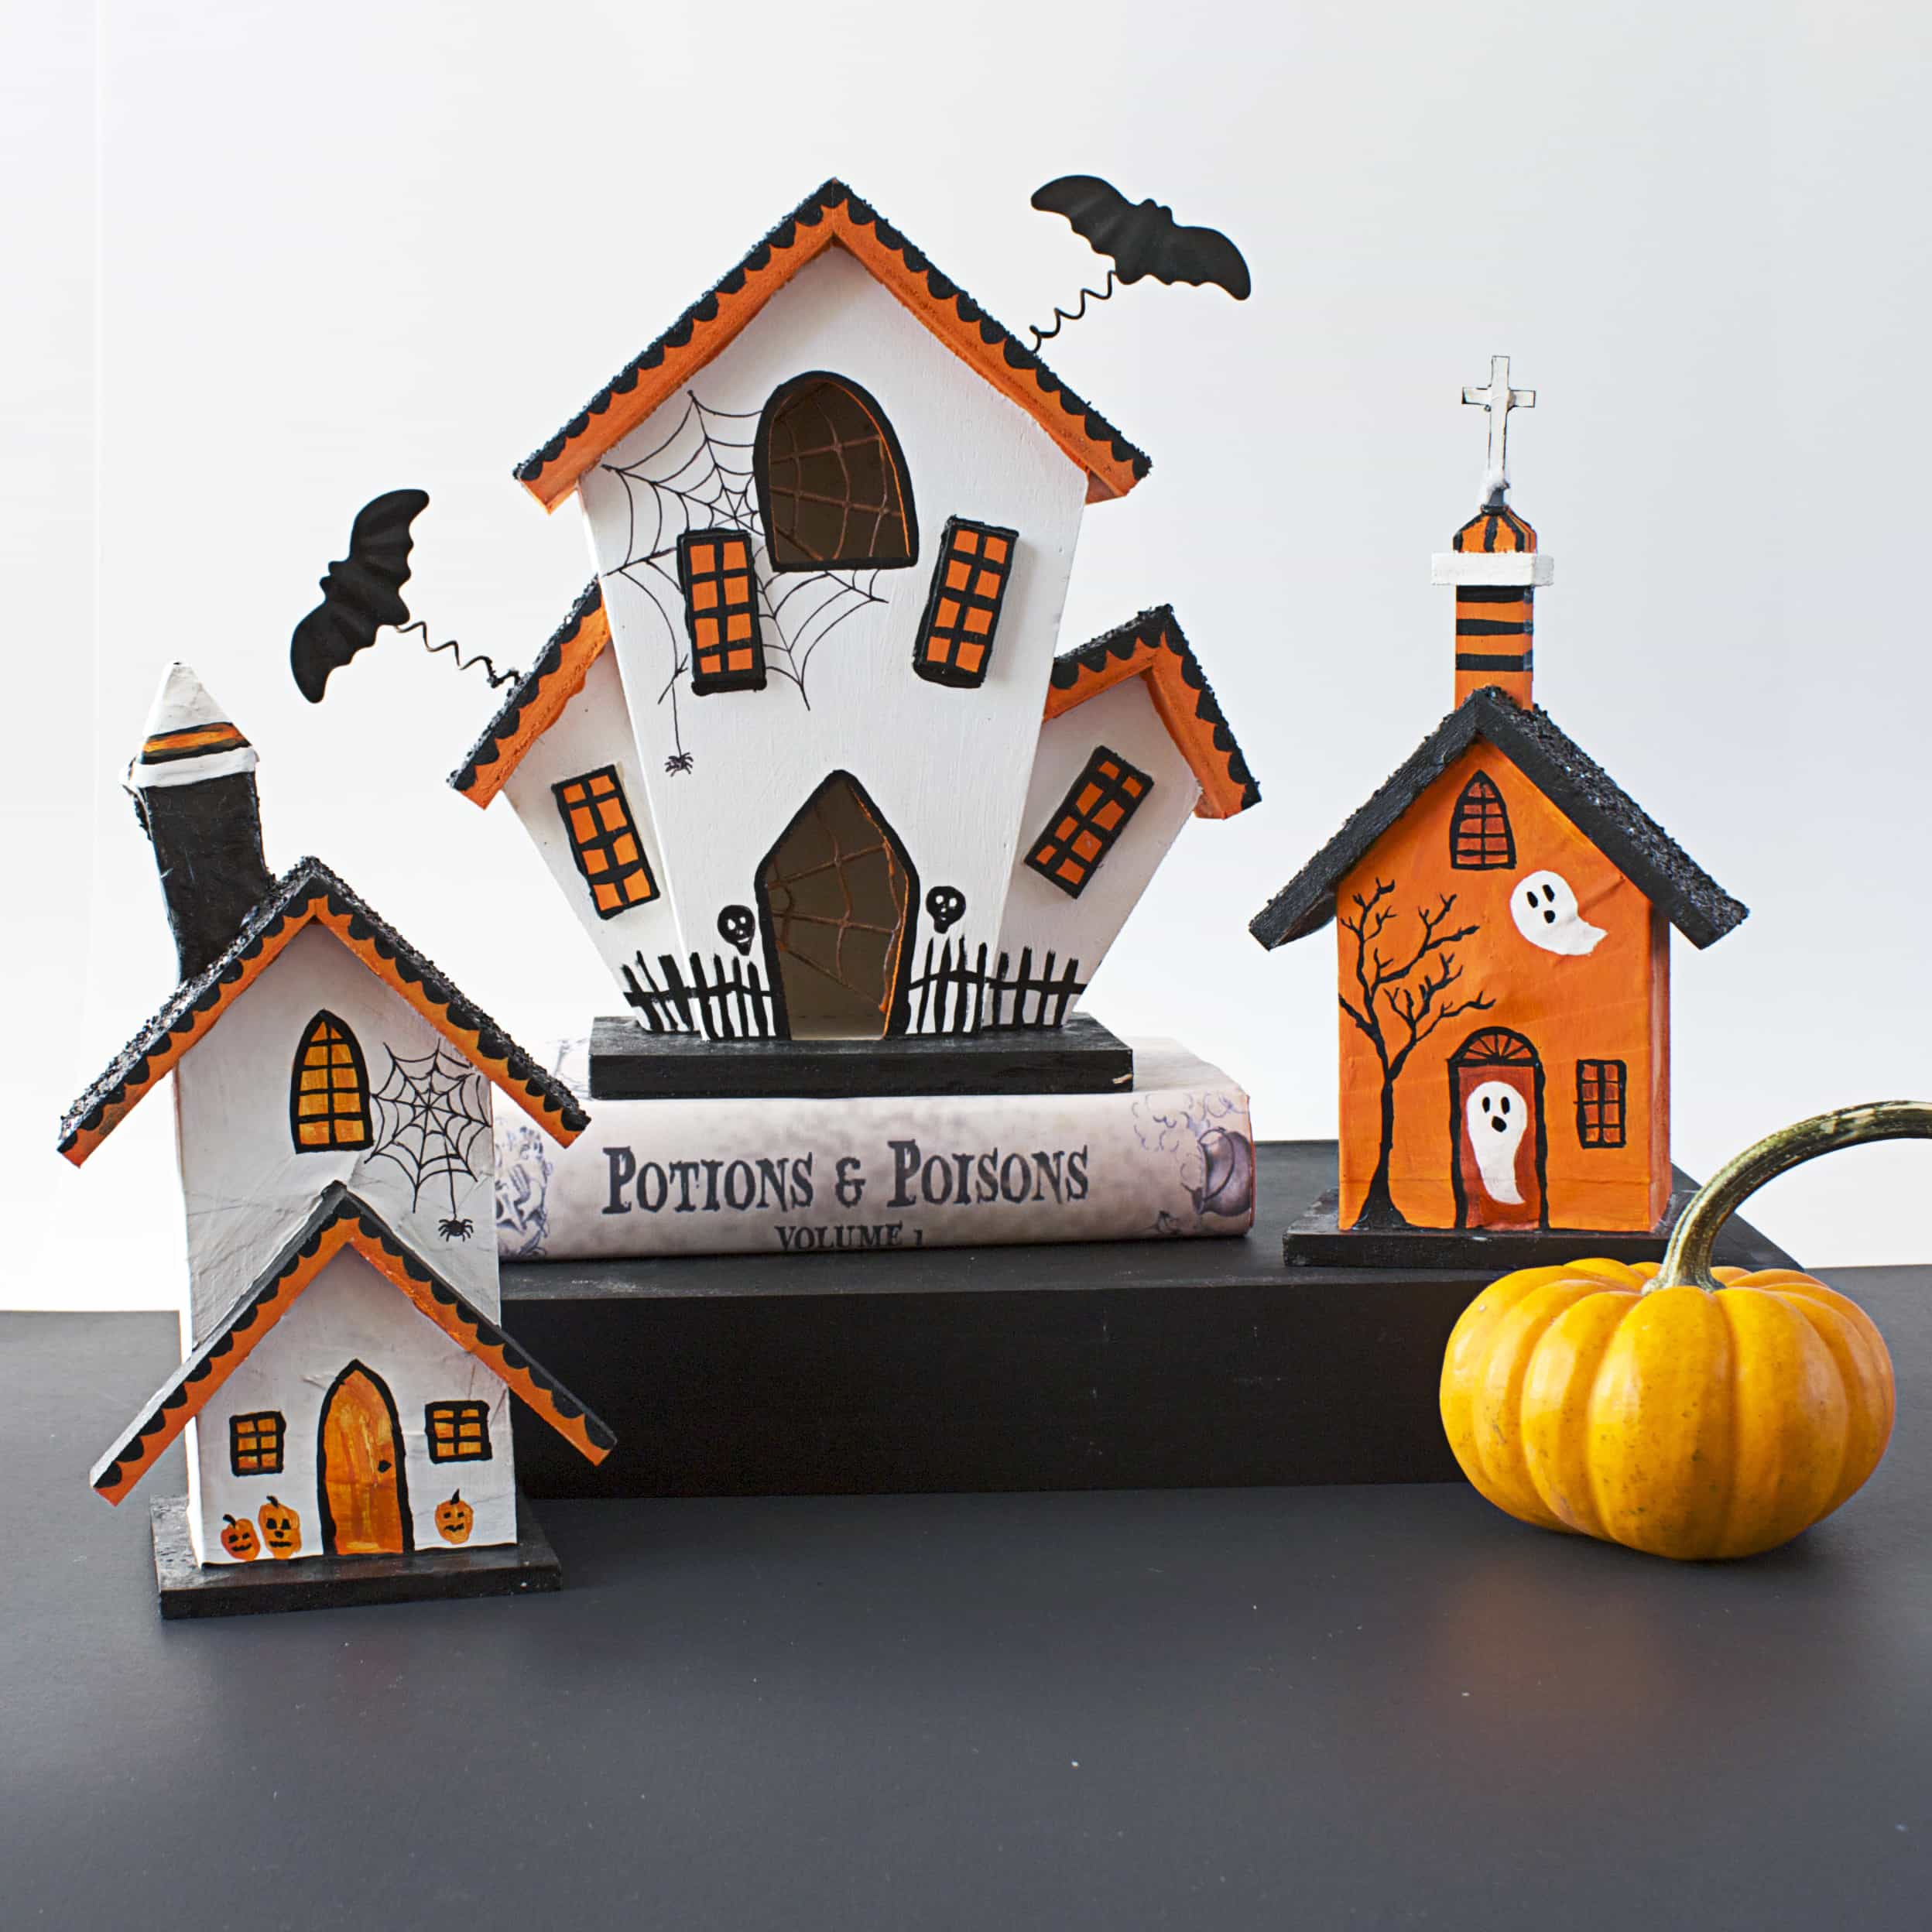 Three wooden birdhouses painted in white, black and orange sitting on a black table with a small orange pumpkin nearby.